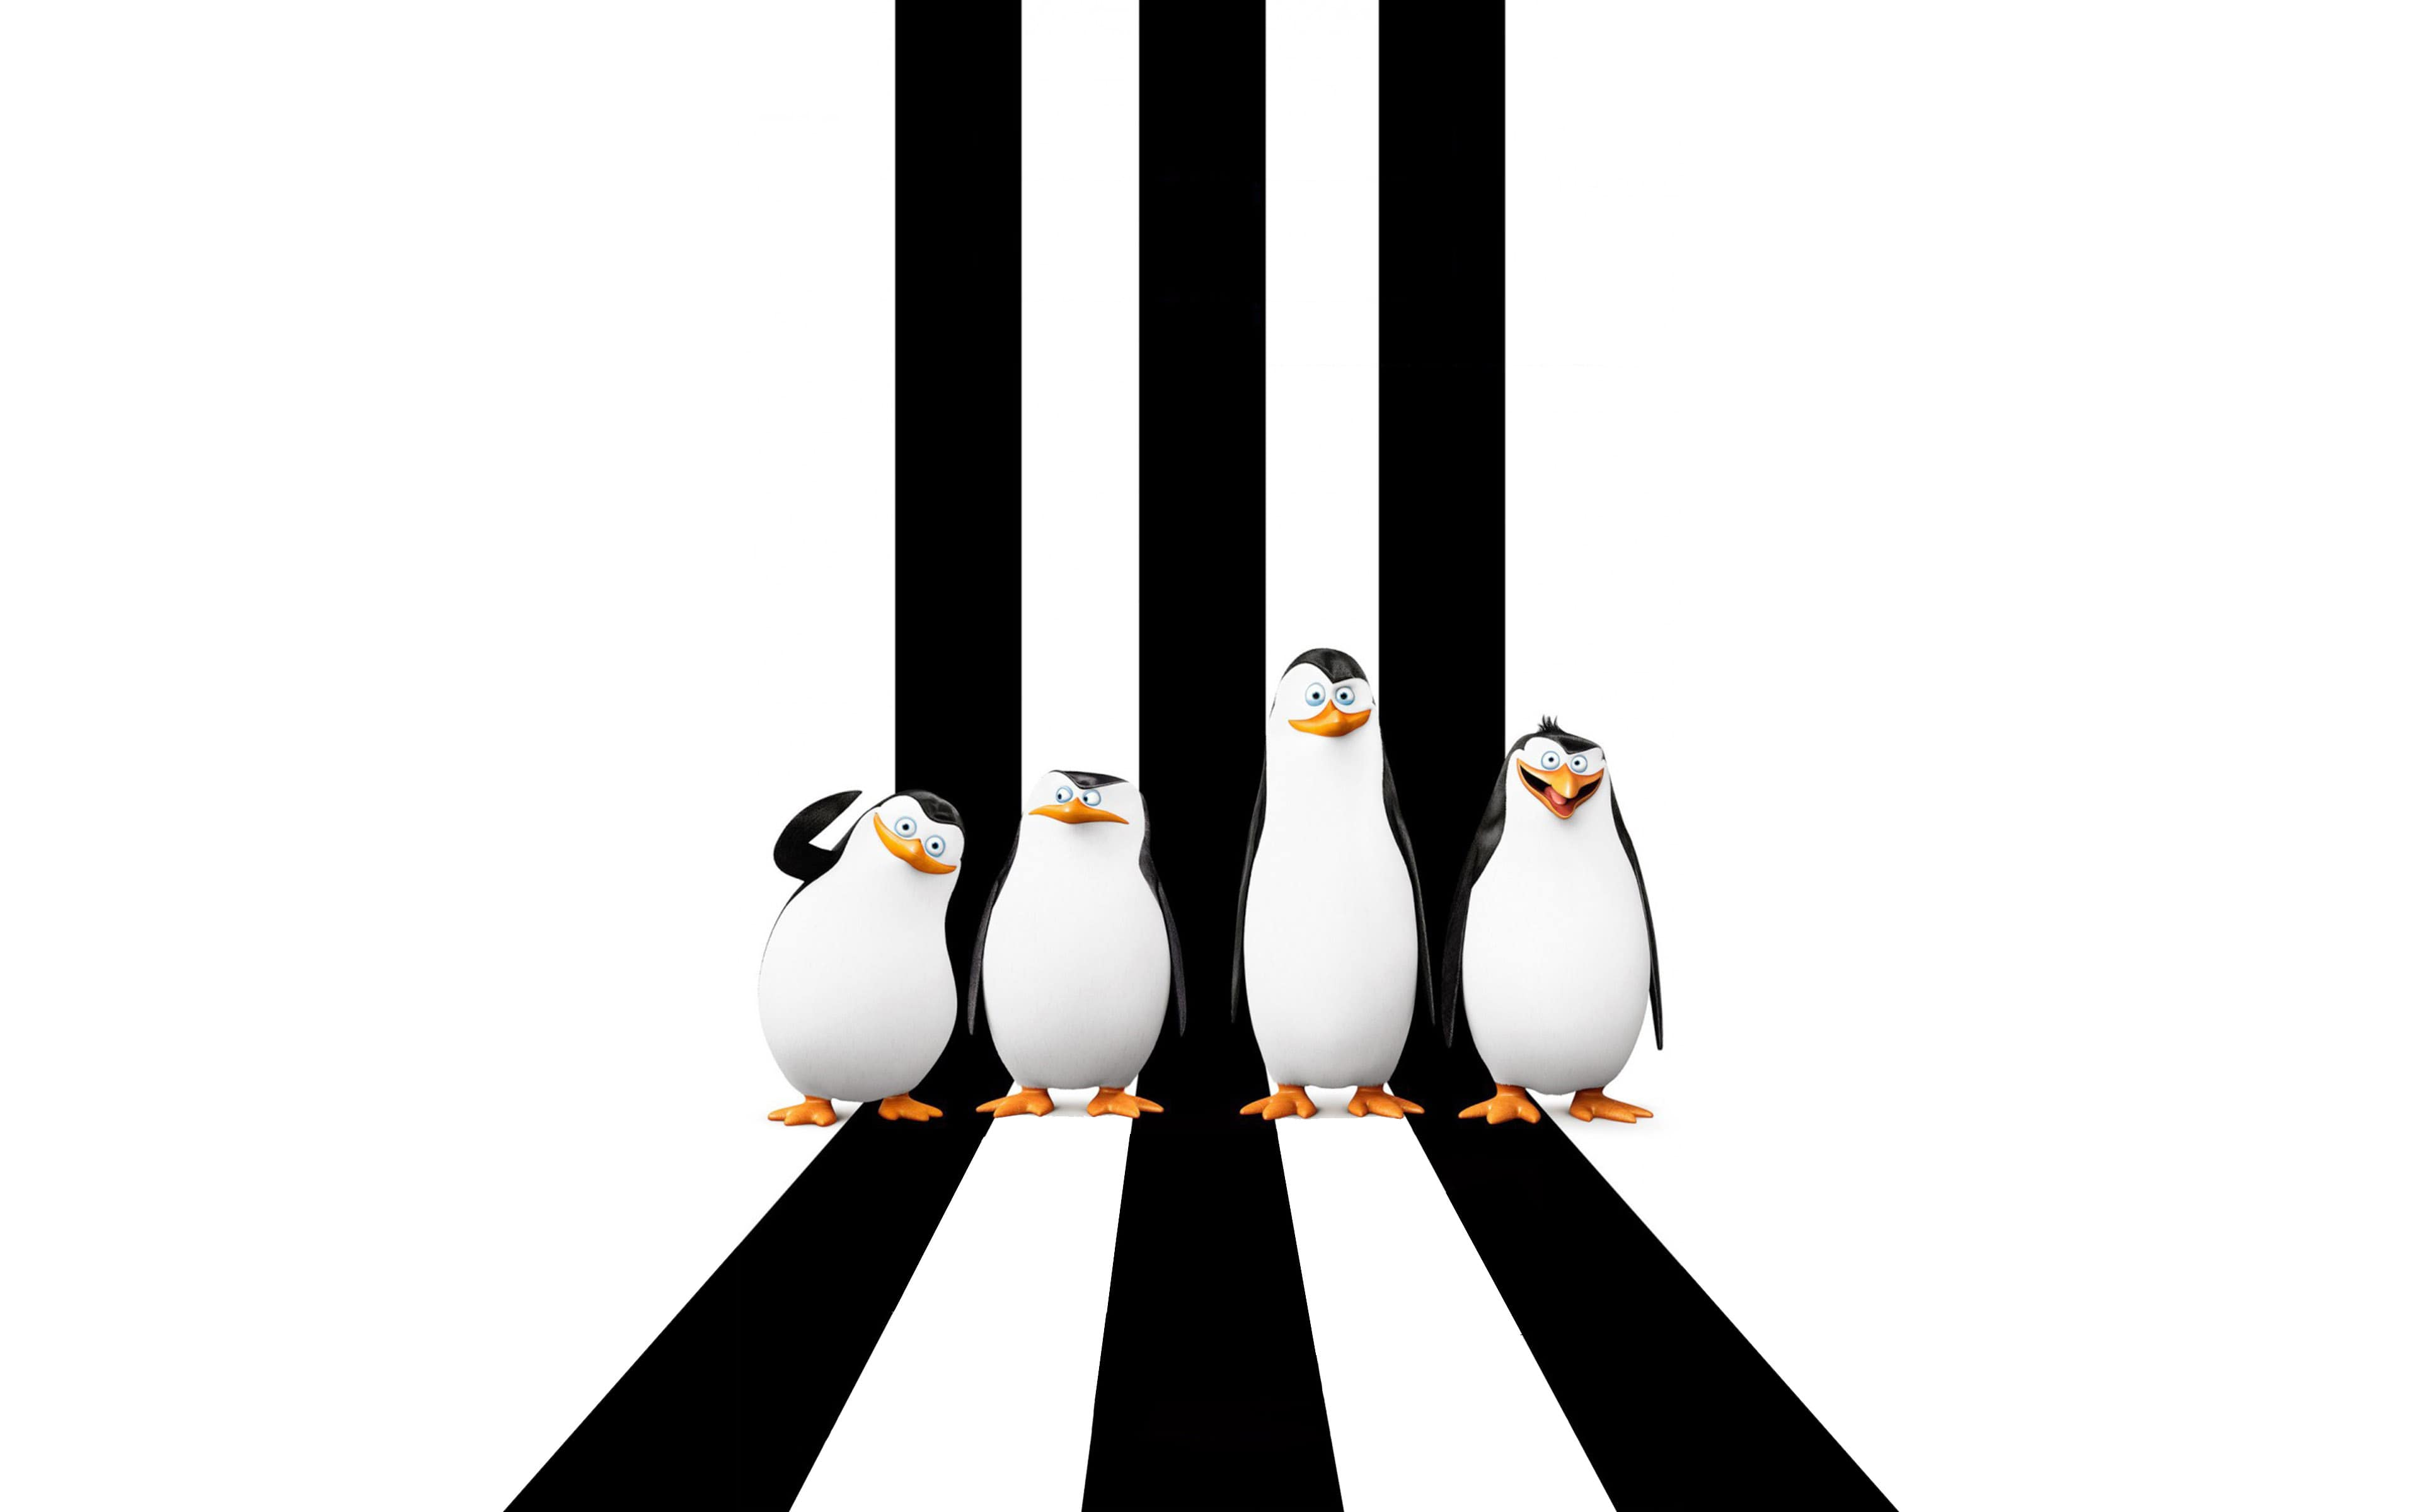 penguins of madagascar hd desktop wallpapers | 7wallpapers